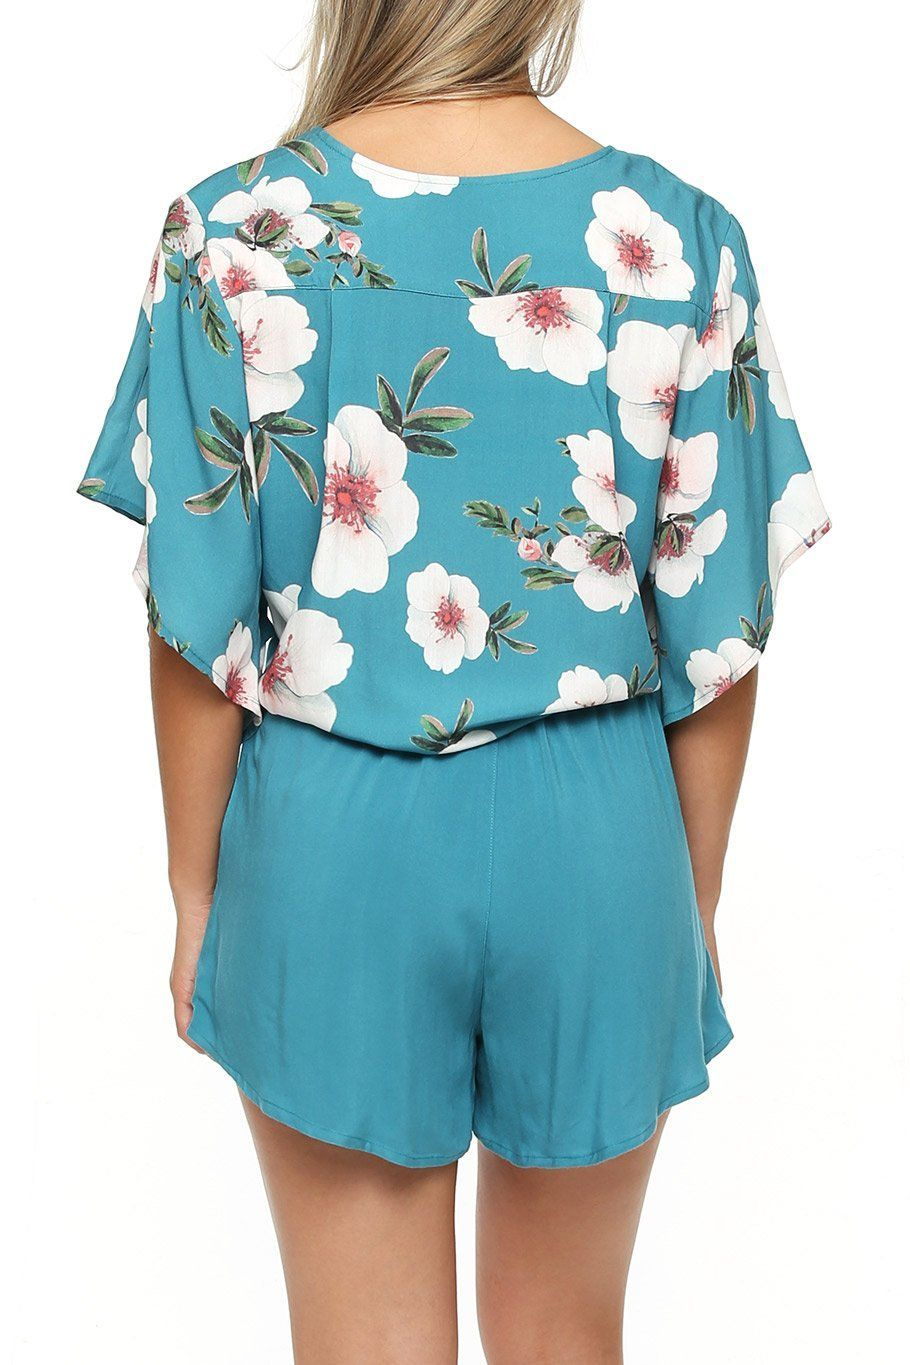 Canary Flutter Sleeve - Teal Floral - Shore